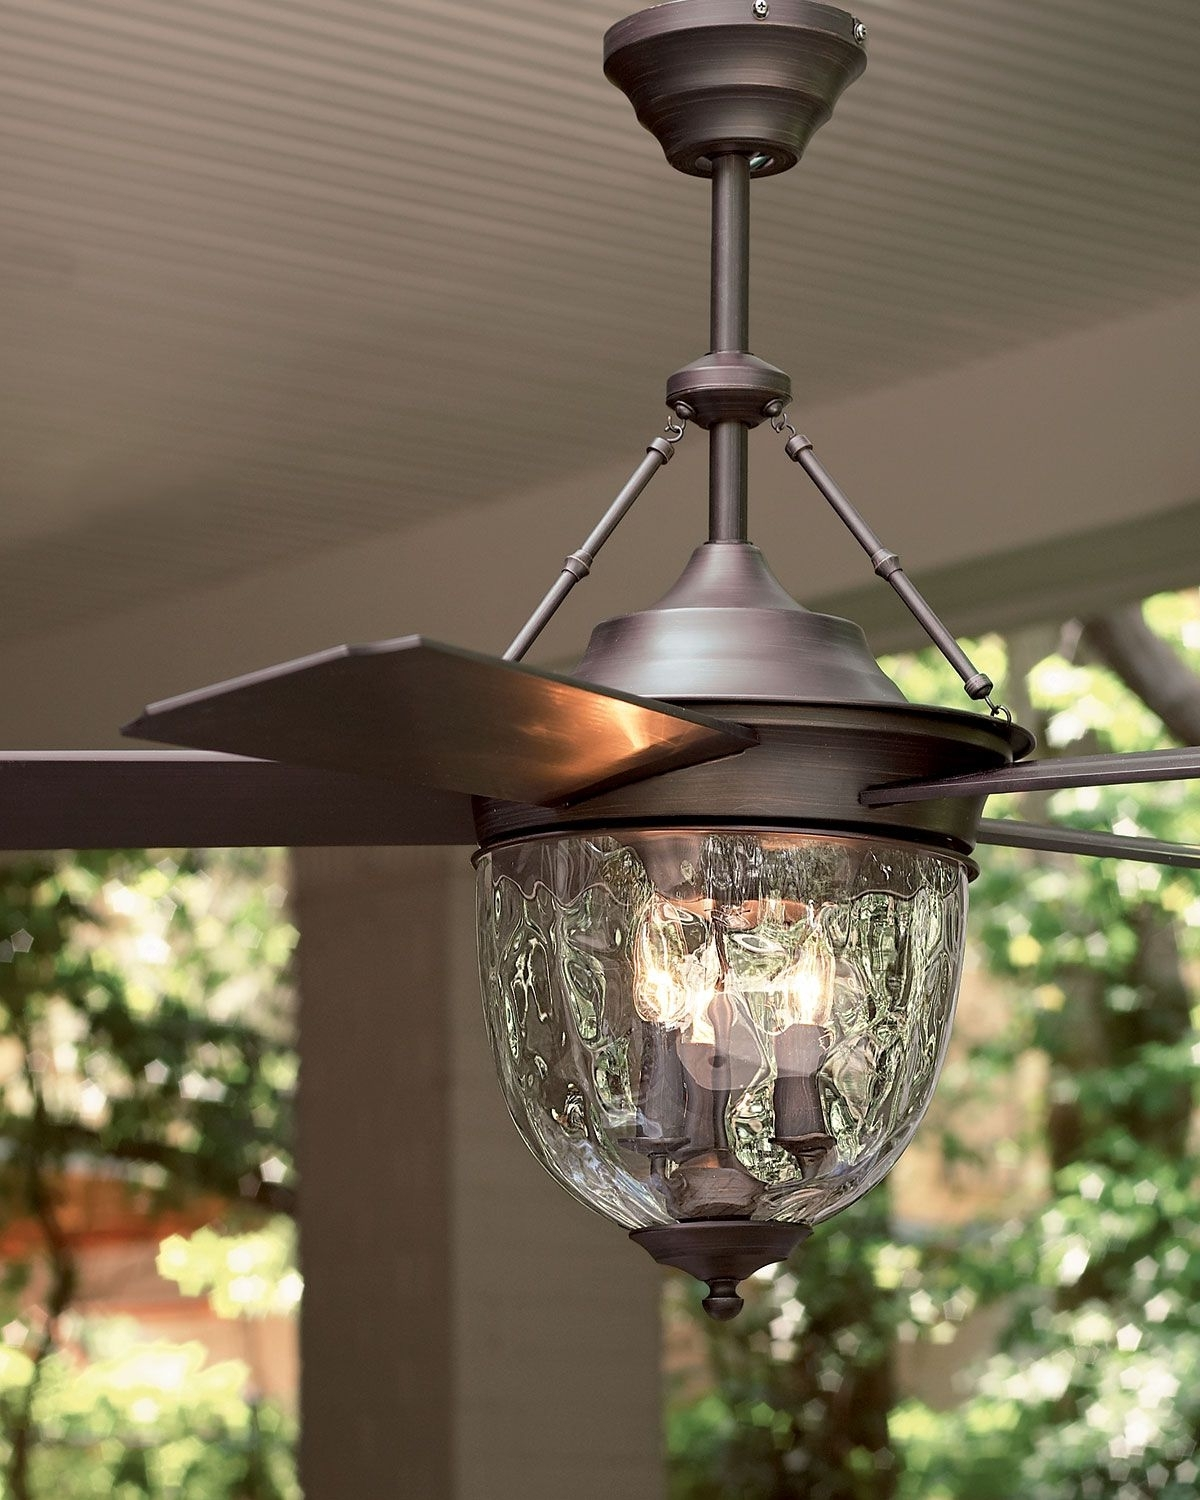 Outdoor Areas For Outdoor Ceiling Fans With Lantern (View 9 of 20)